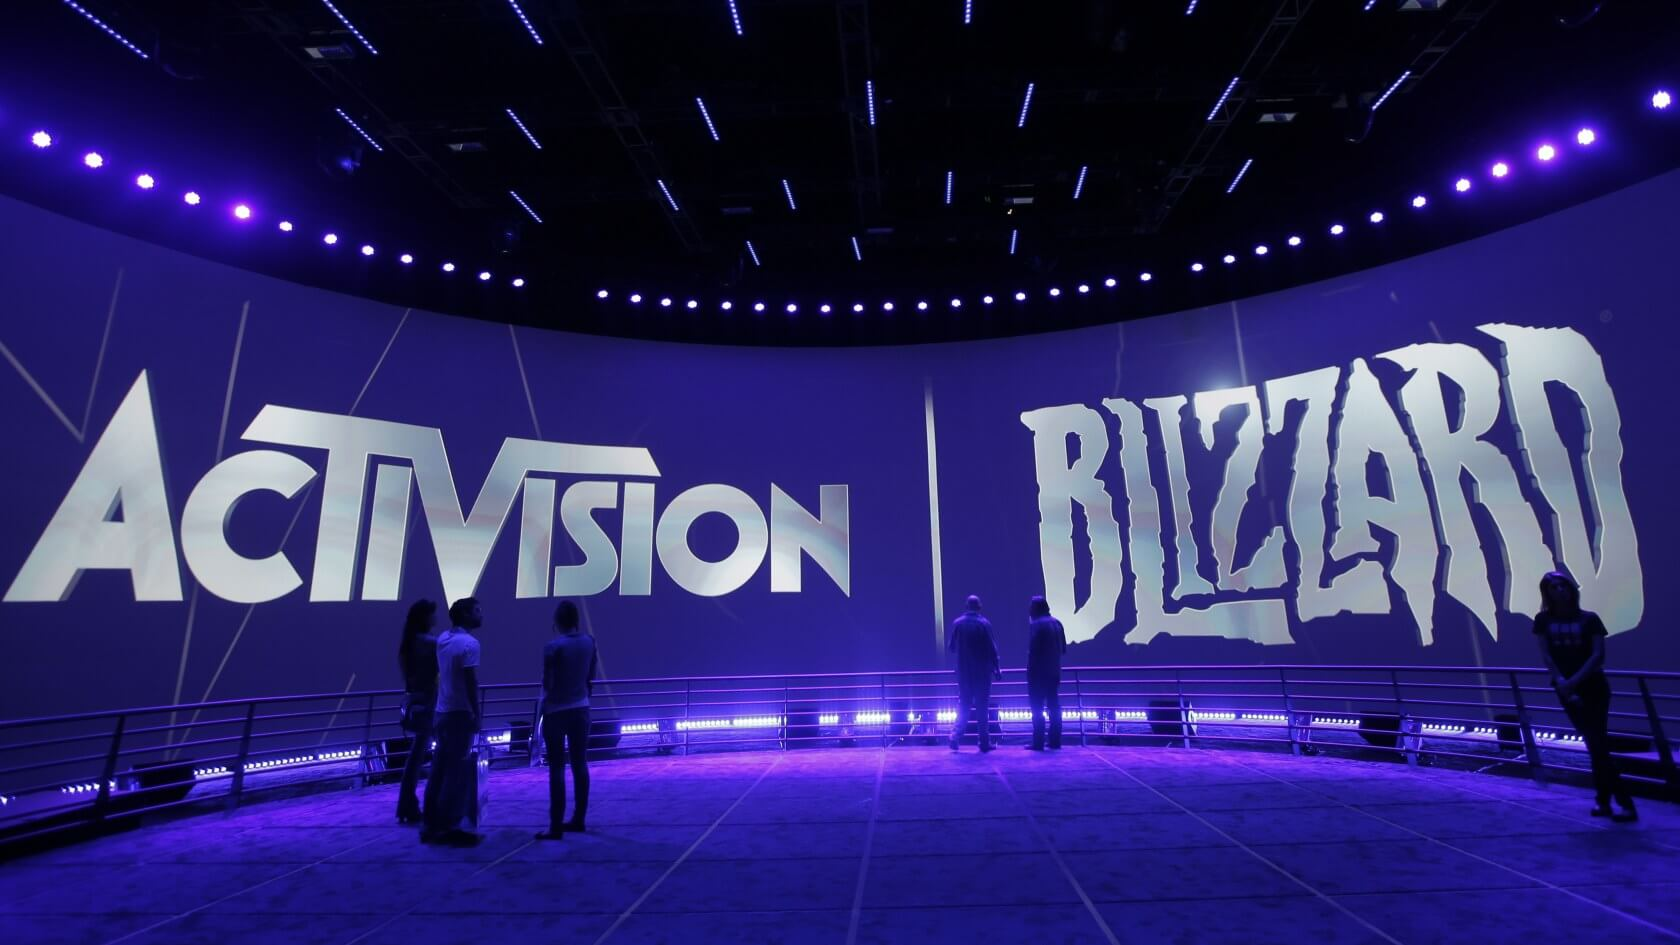 Activision Blizzard's games were pulled from GeForce Now due to a misunderstanding, Nvidia says